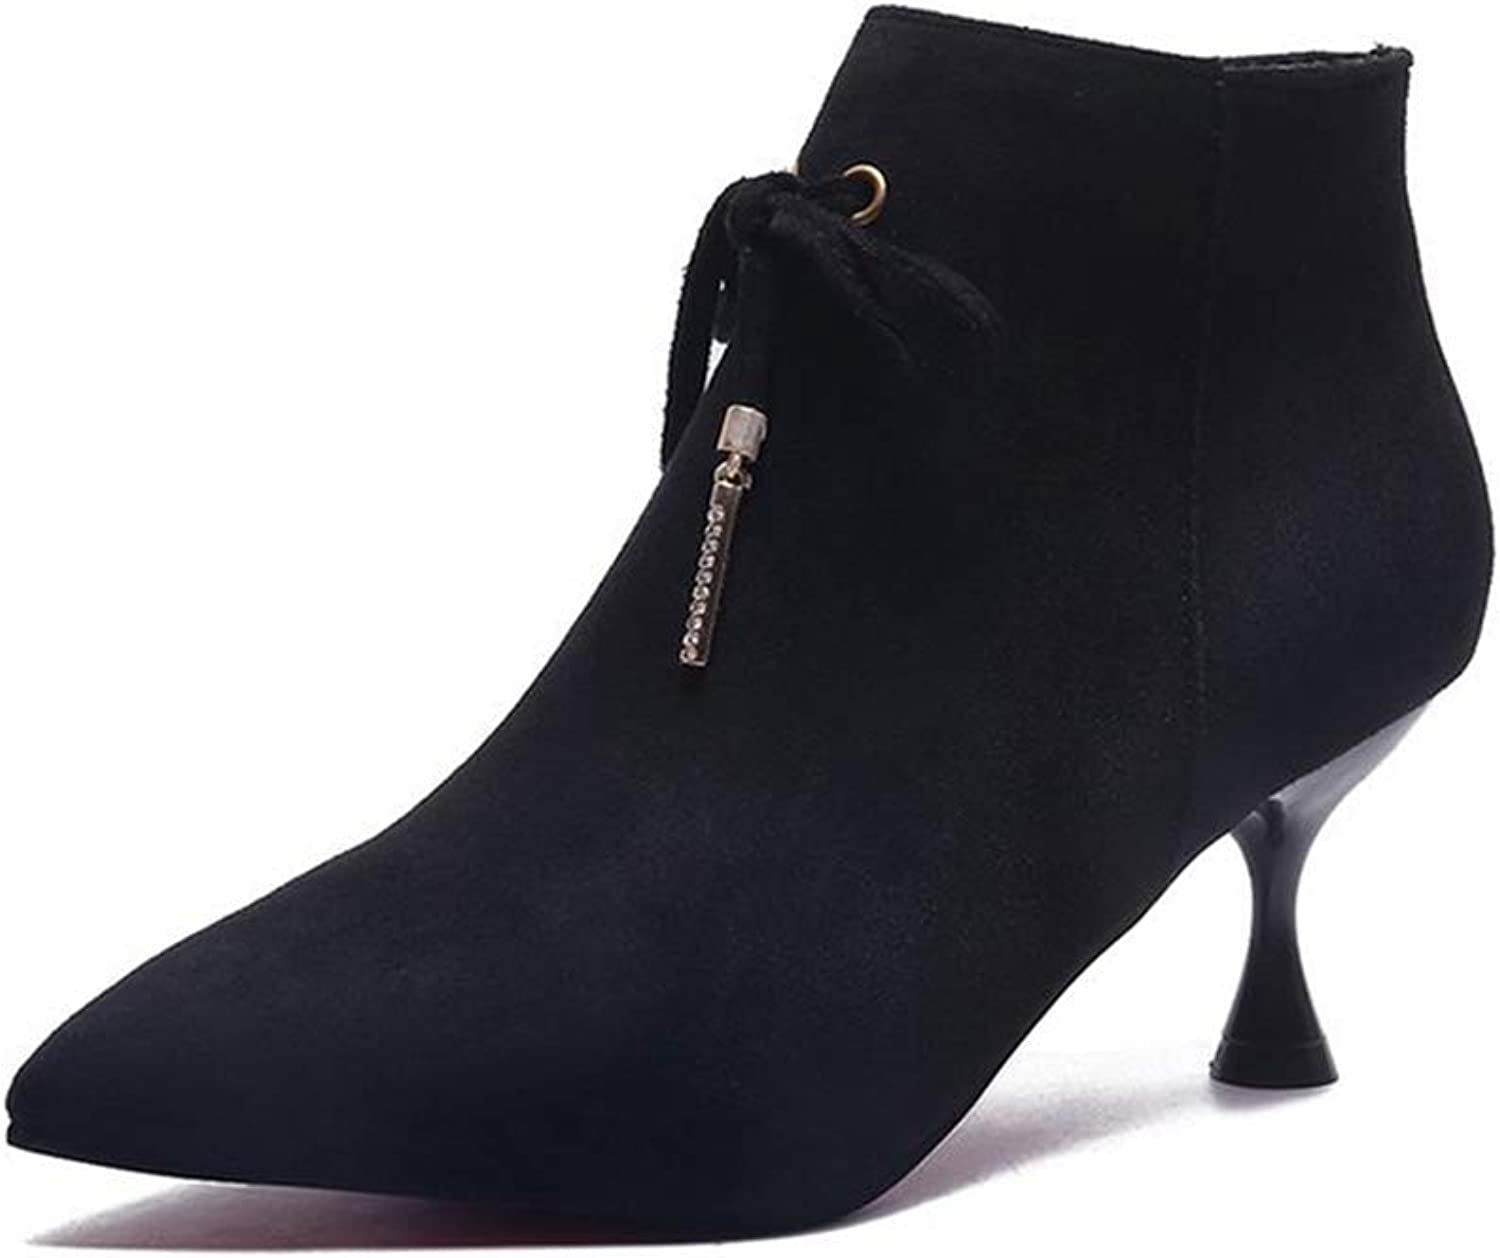 Women's Pointed Toe Ankle Boots Thin Heel Side Zipper Fashion Booties Elegant Stiletto Martin Boot